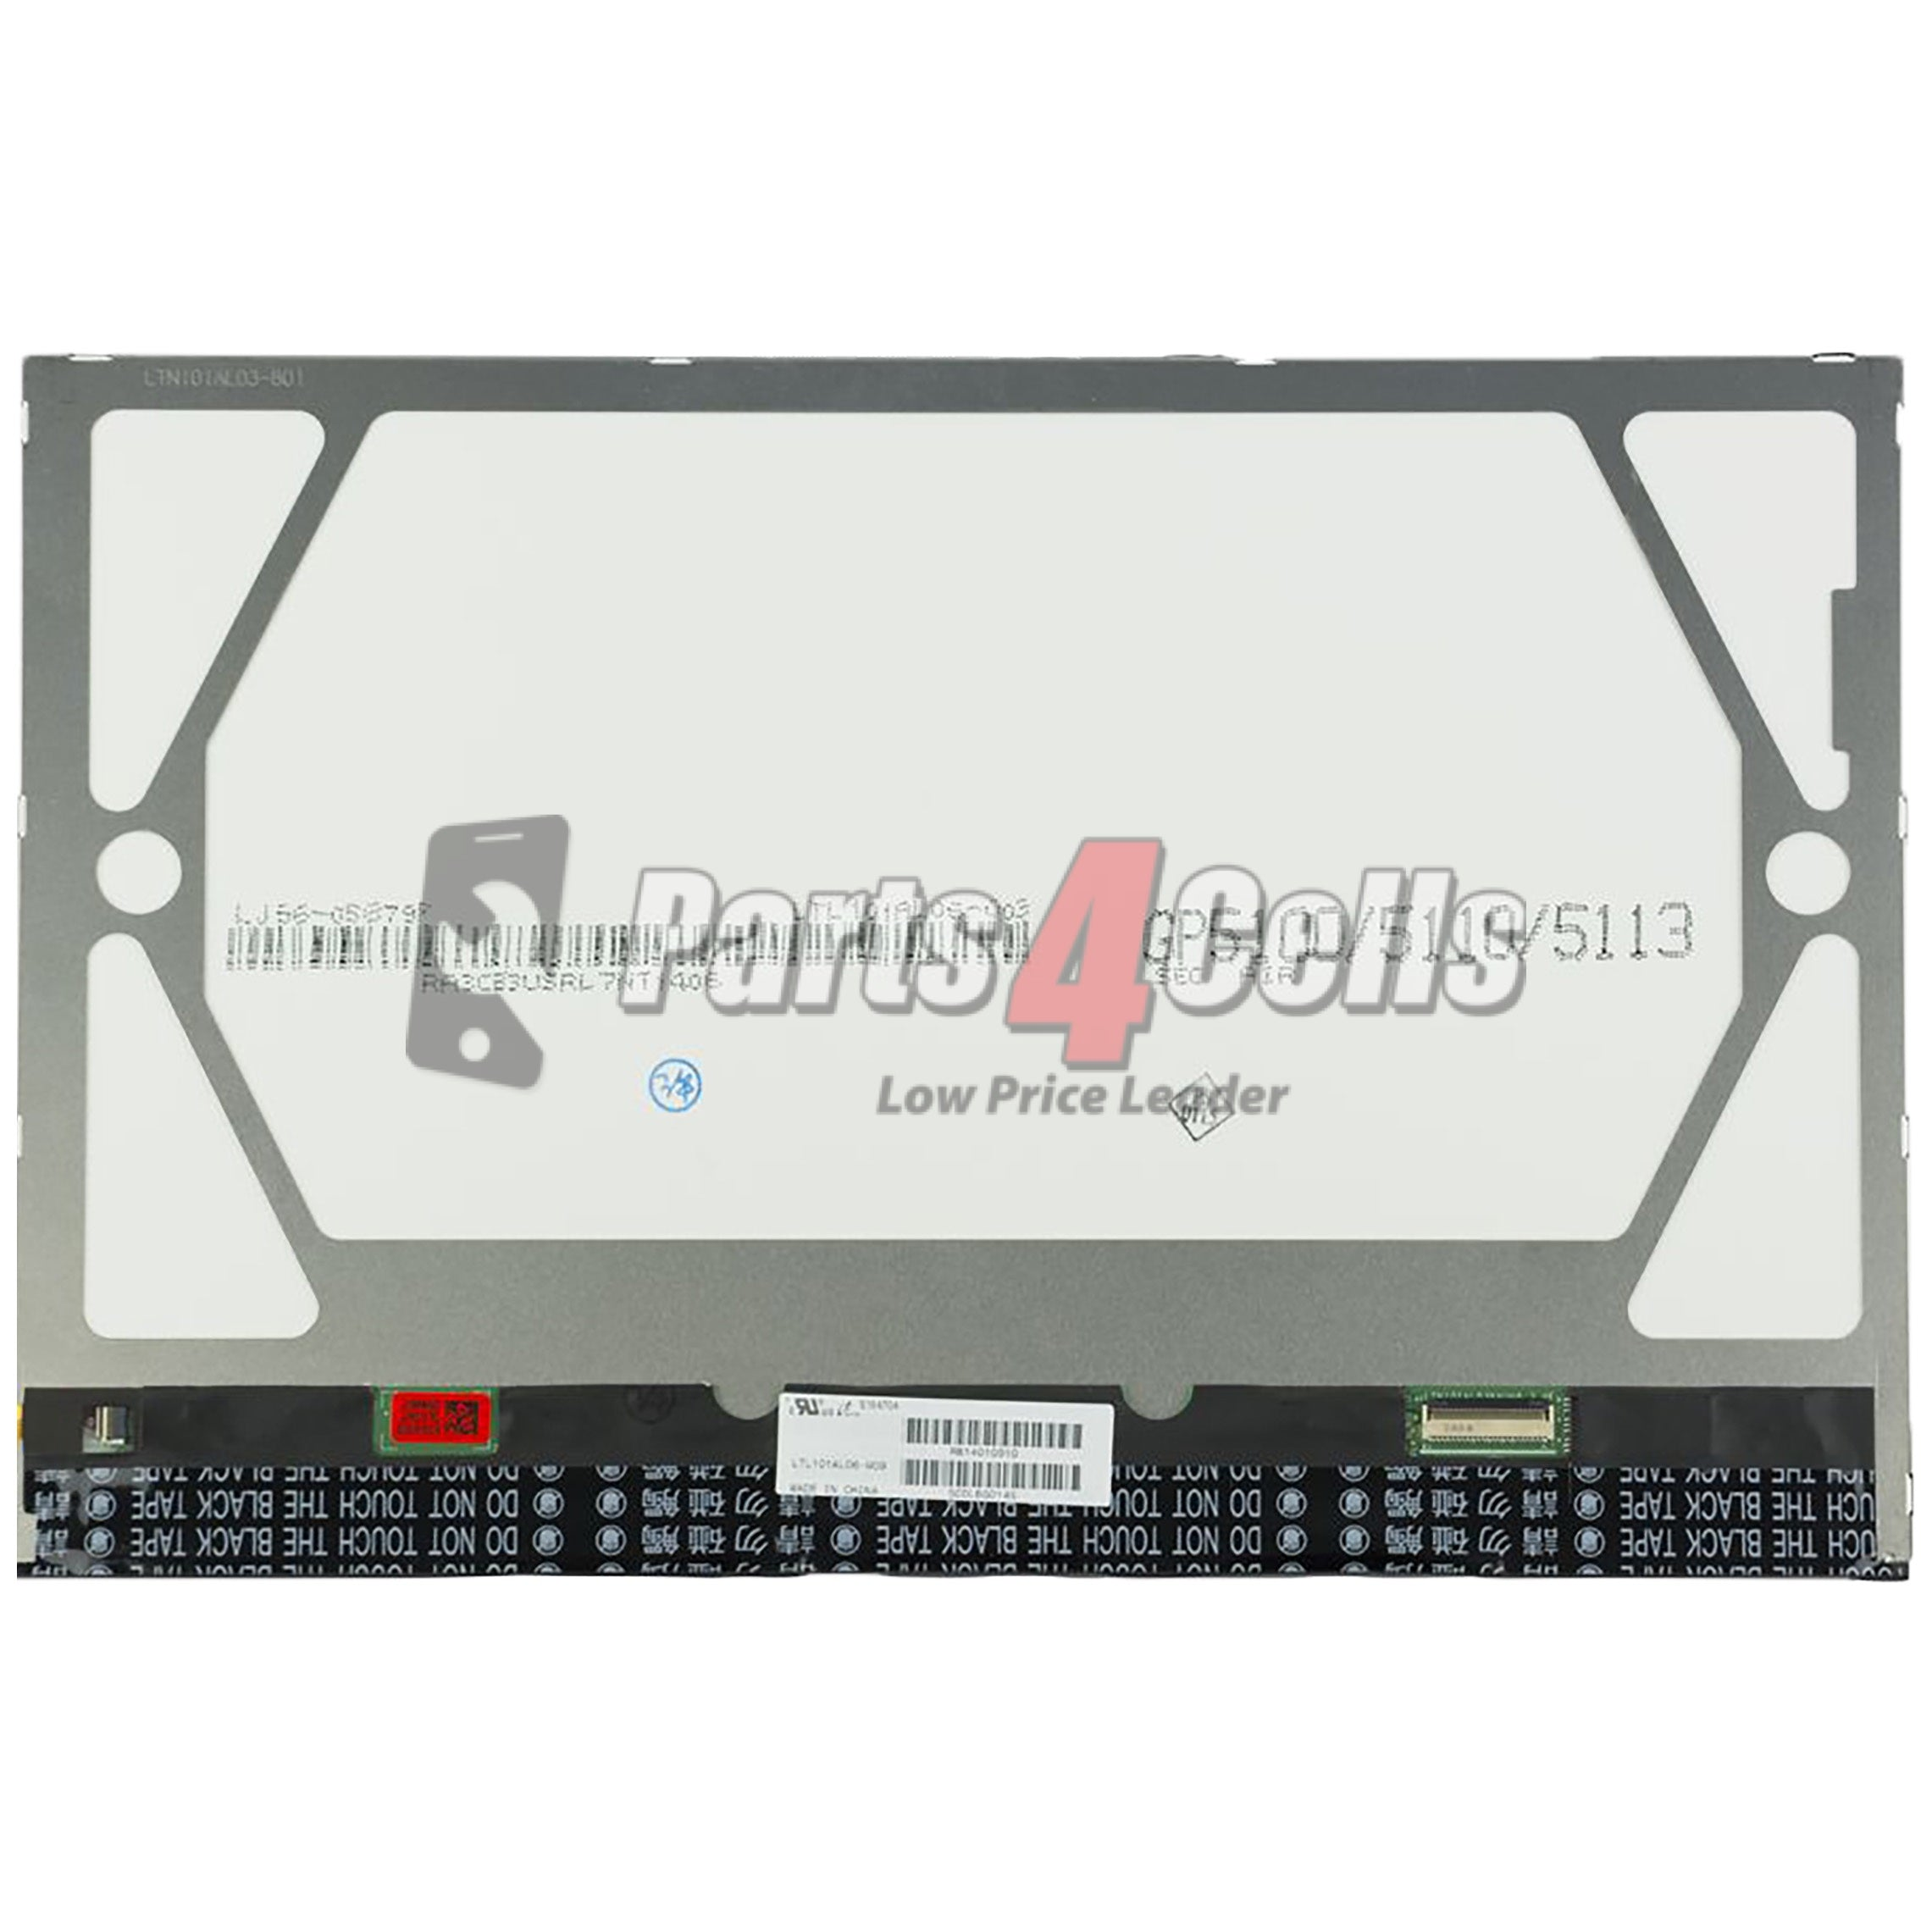 Samsung P5100 LCD Screen Display